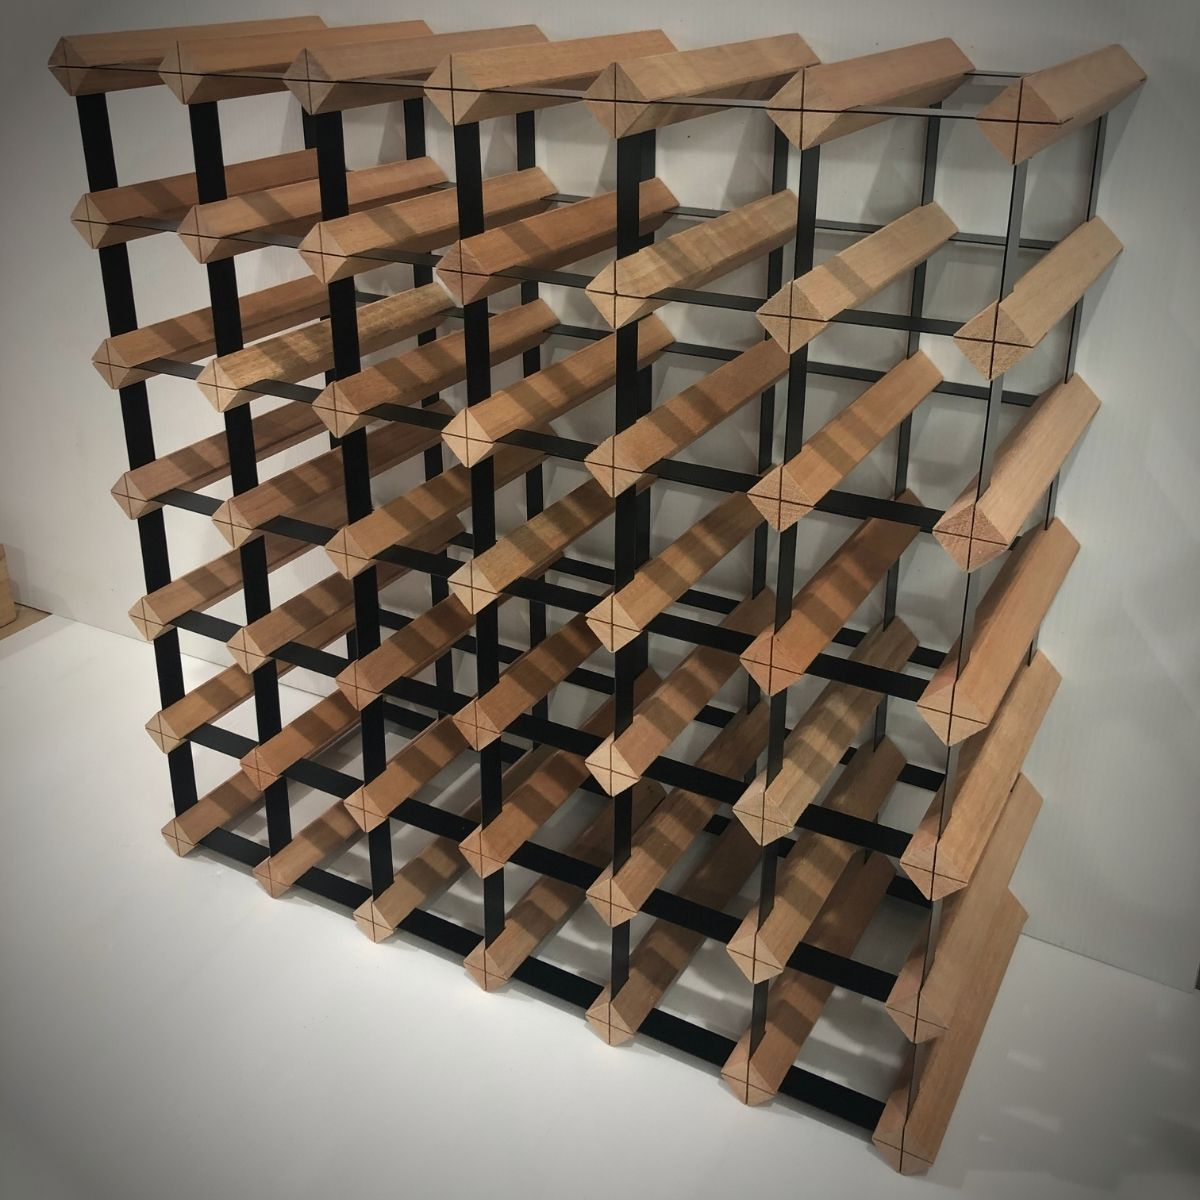 42 Bottle Timber Wine Rack | 6x6 Configuration